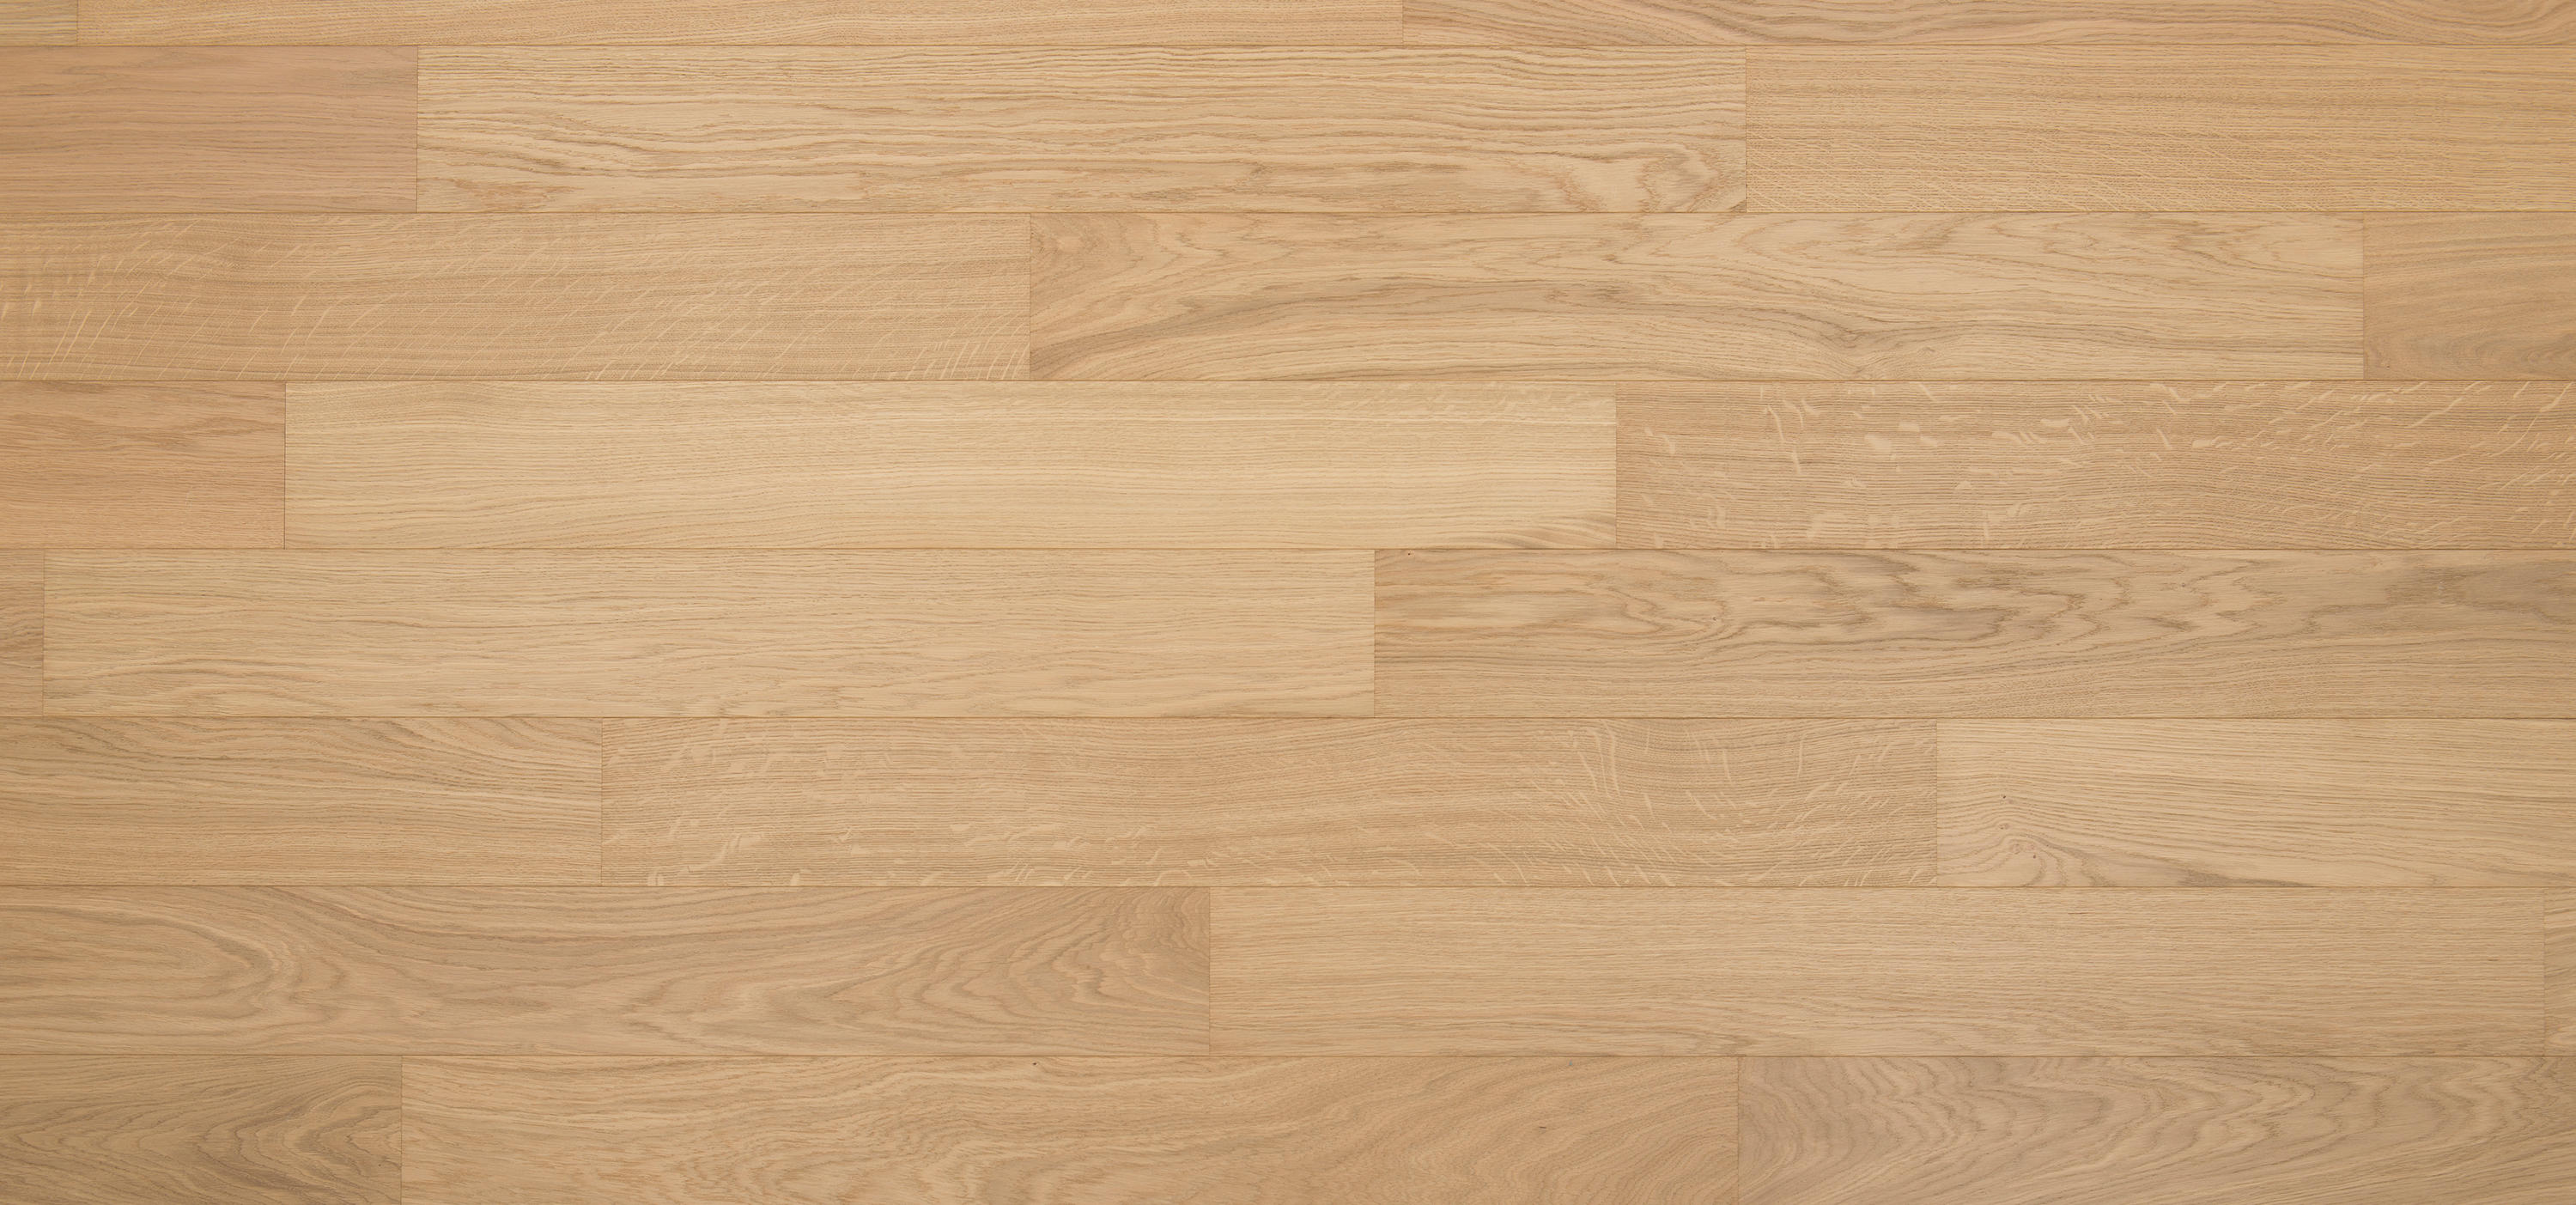 Par Ky Classic 20 Ivory Oak Select Wood Flooring From